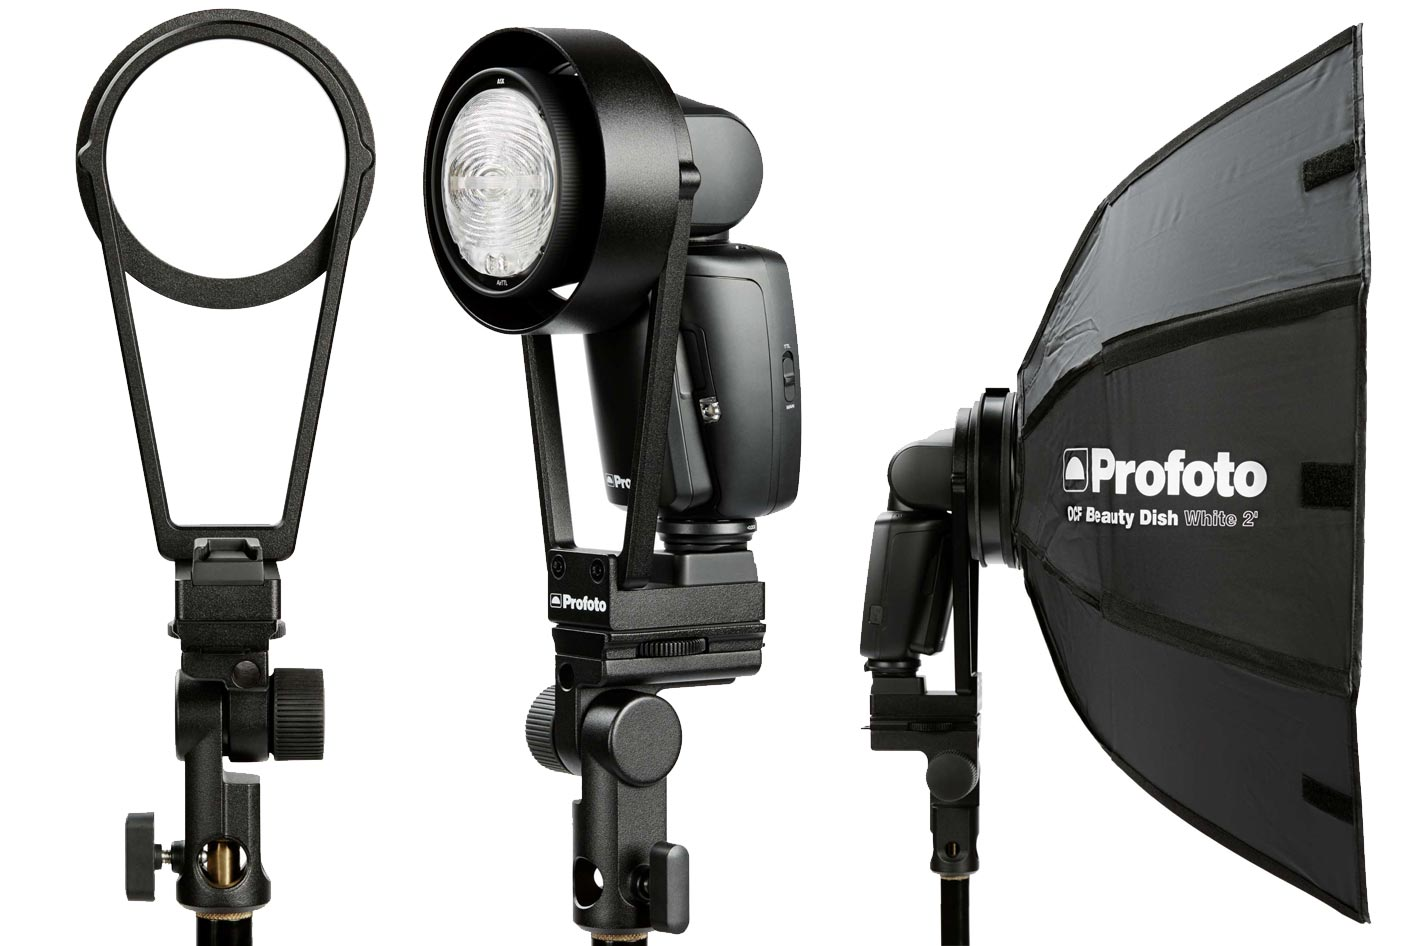 New OCF Adapter for Profoto A-series flash